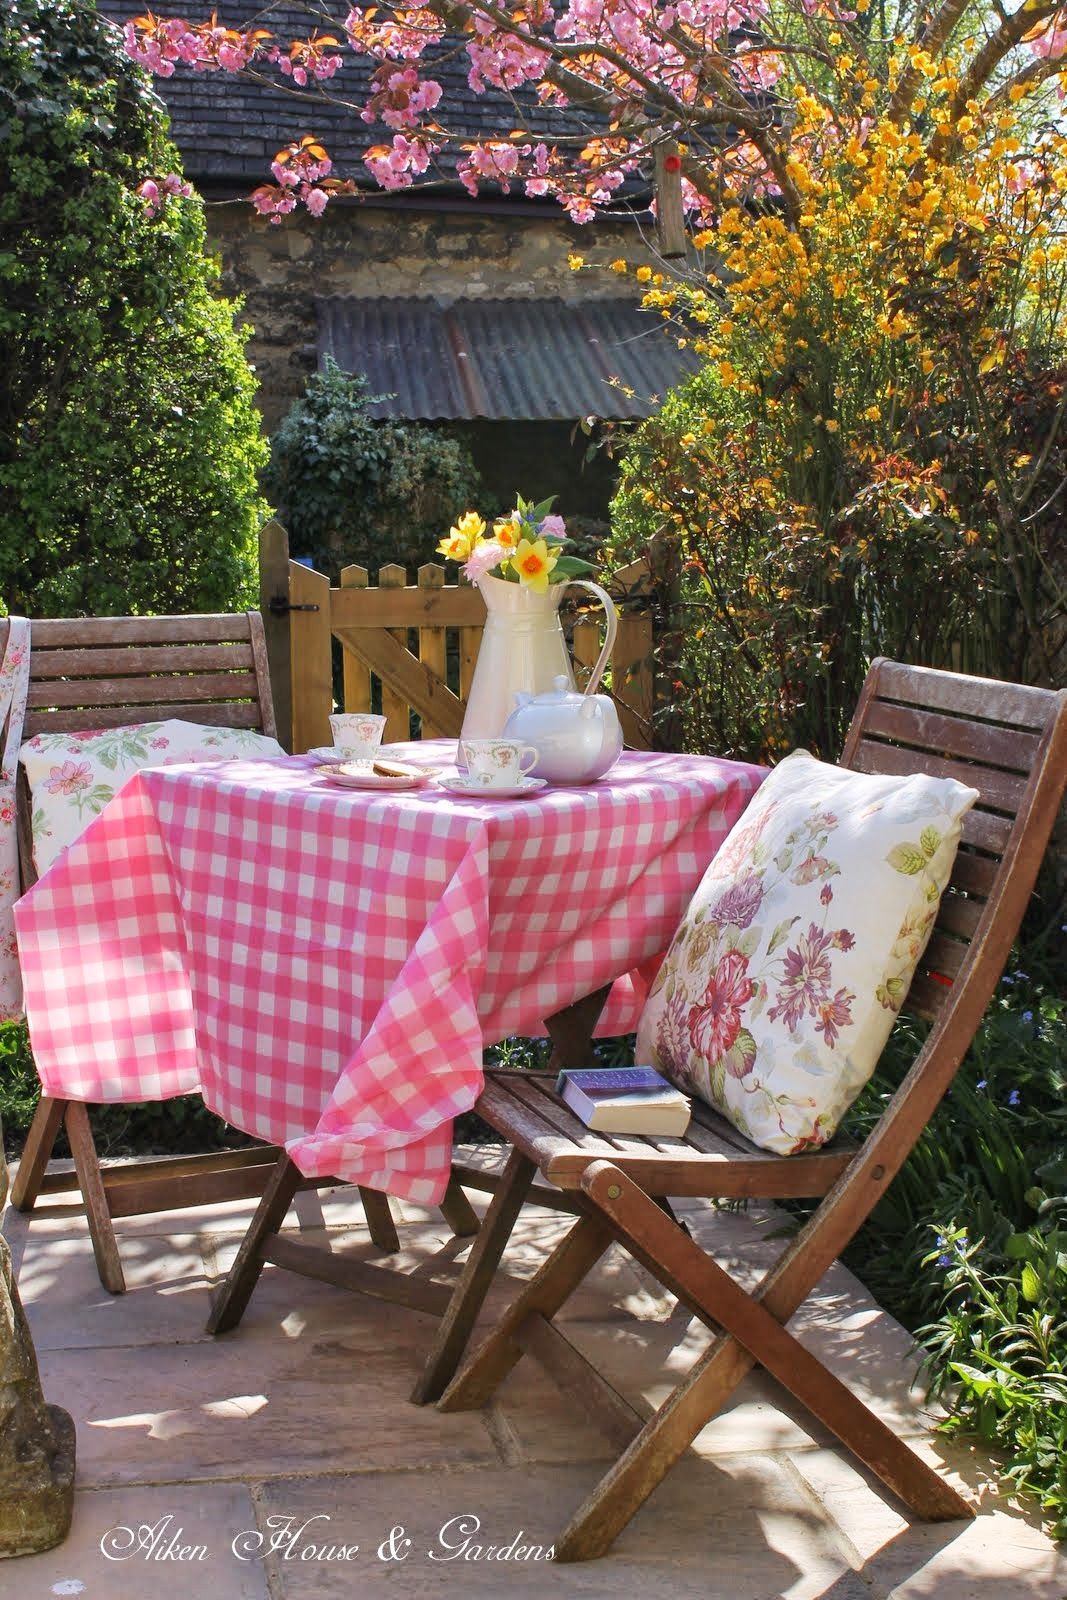 ideas old best furniture for cottage outdoor homebnc garden style